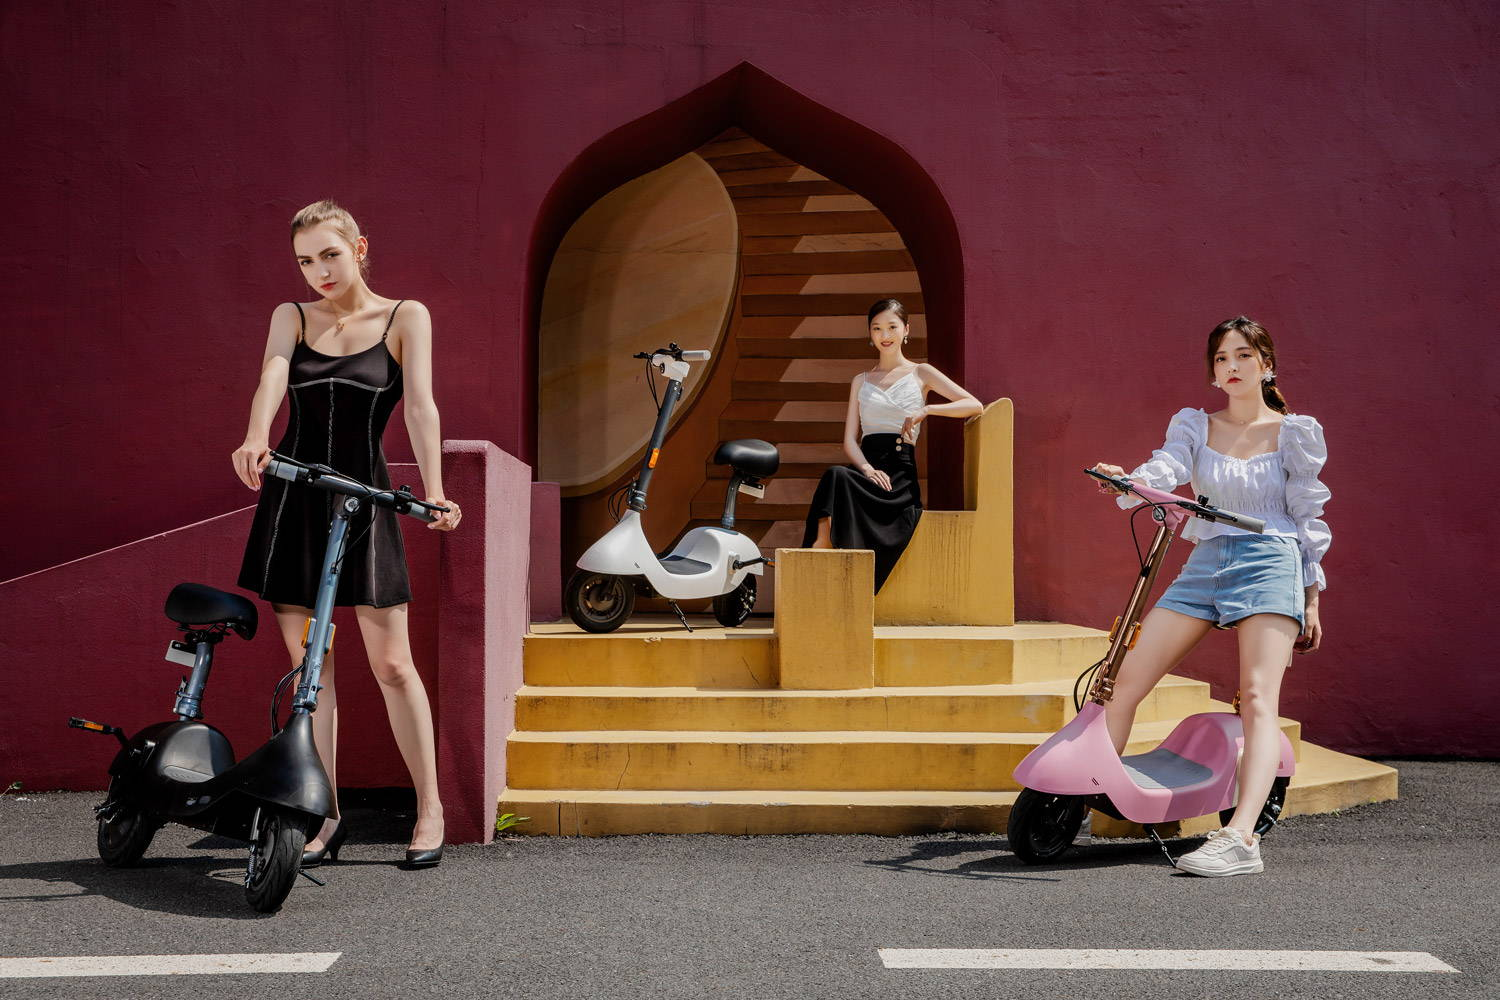 okai ea10 pink black white escooter with seat 3 girls riding together